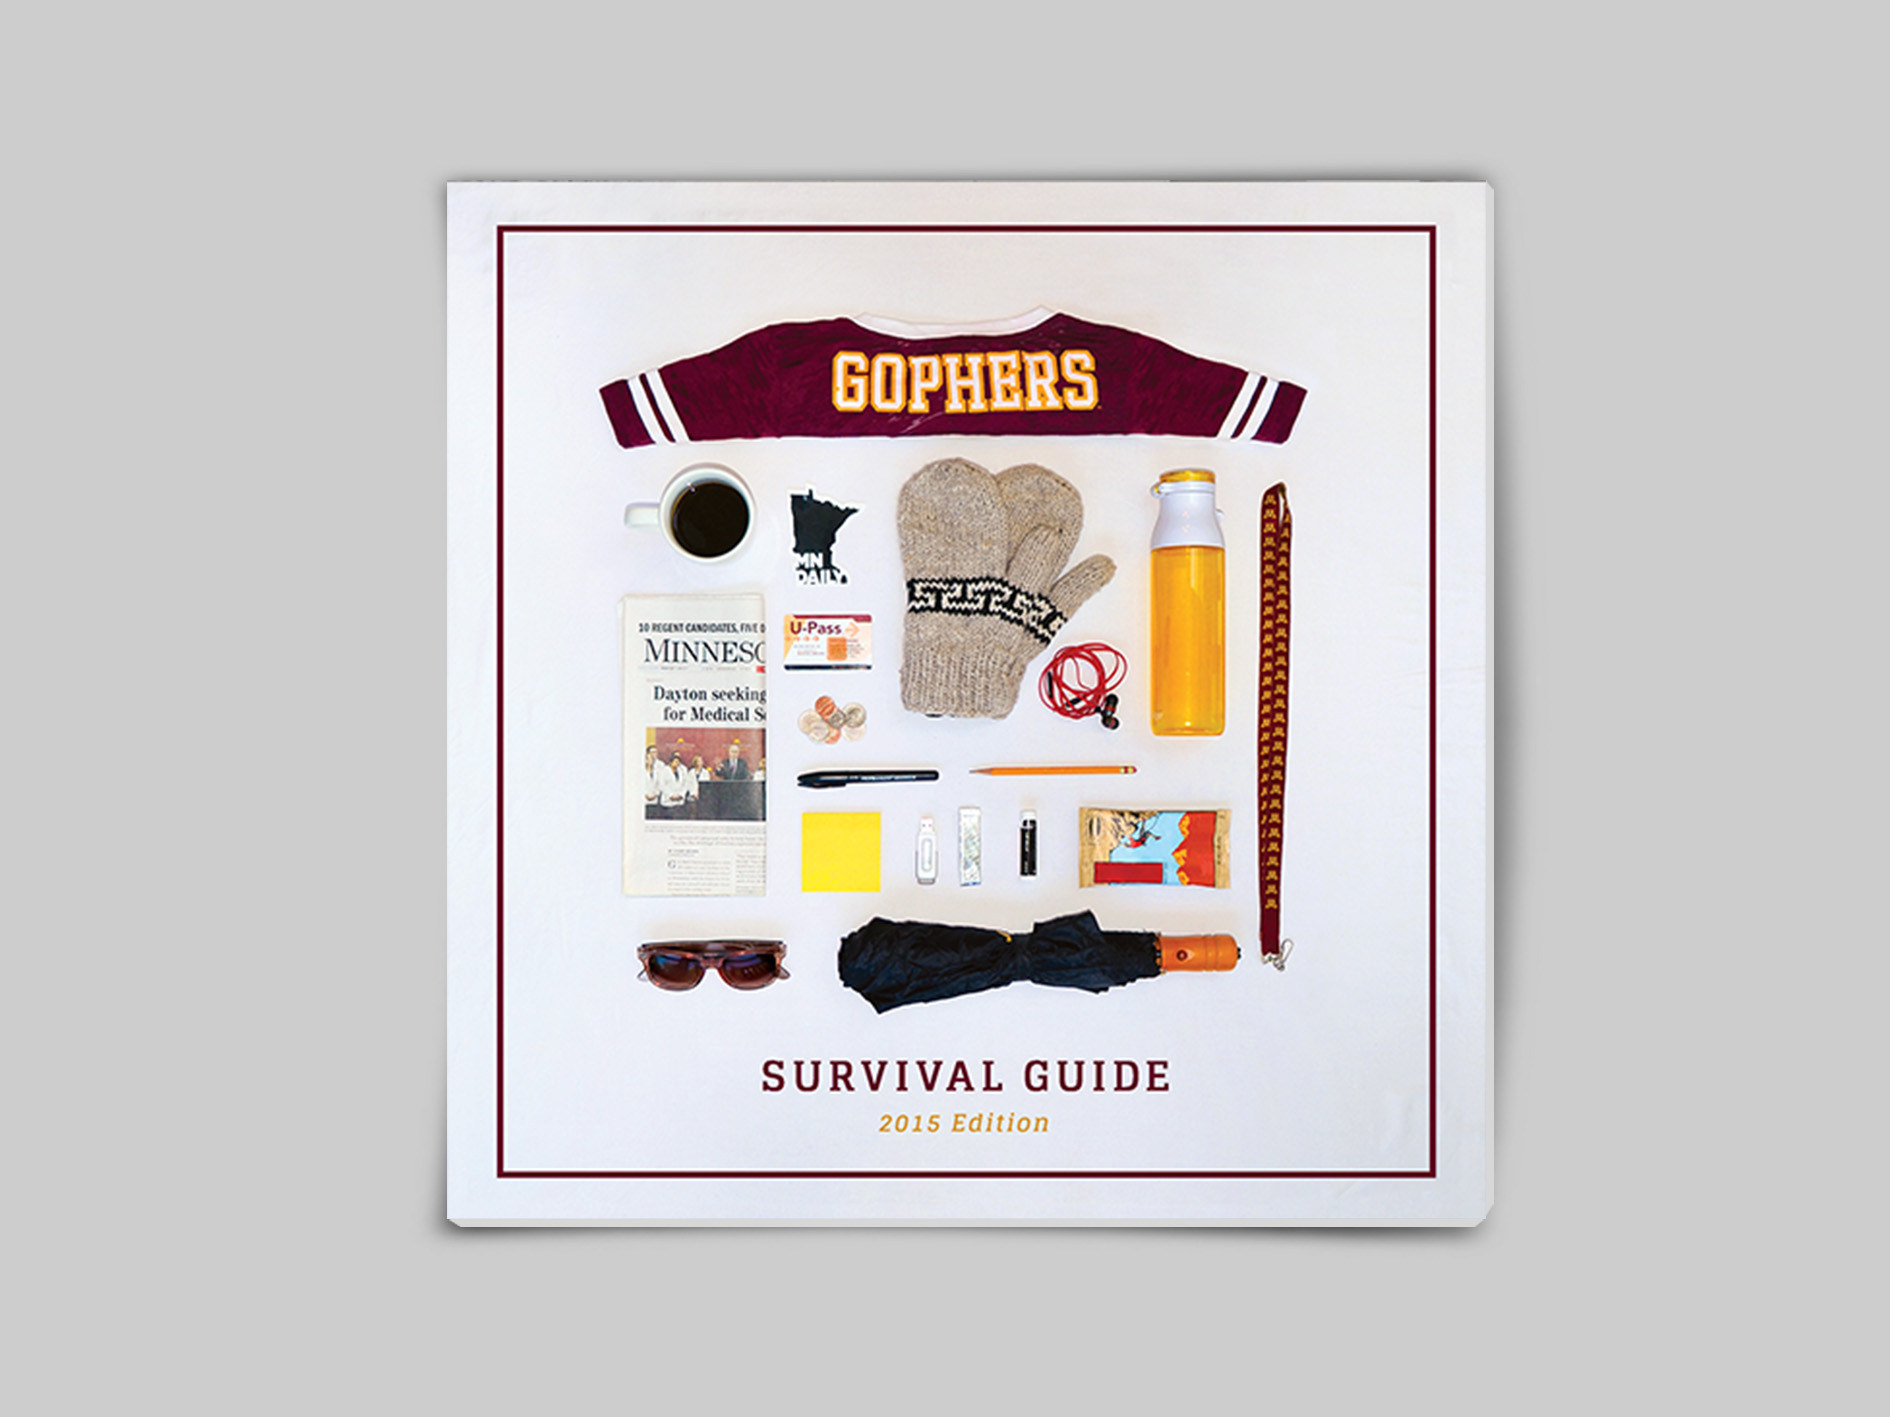 survival guide Front Cover mockup.jpg